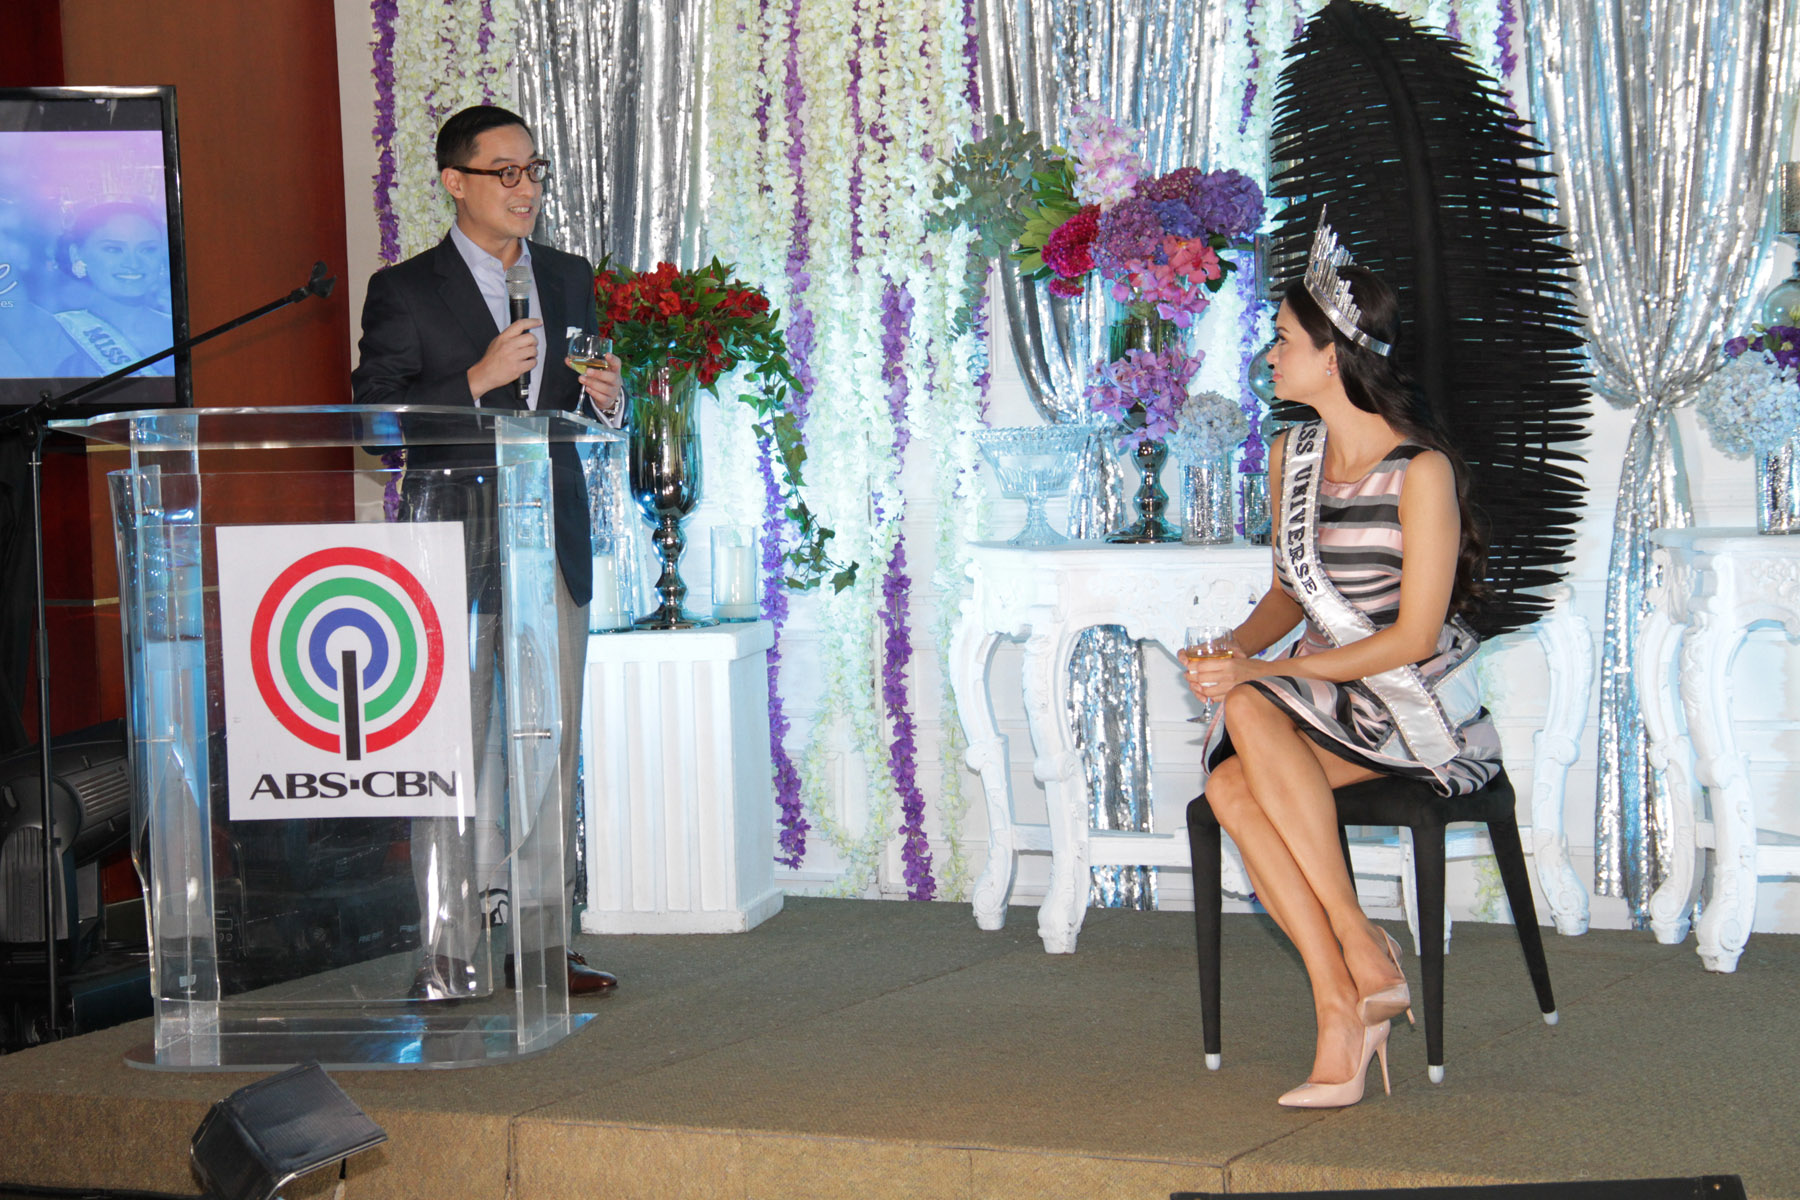 Miss Universe 2015 Pia Alonzo Wurtzbach in an intimate brunch with ABS-CBN executives during her recent Kapamilya homecoming